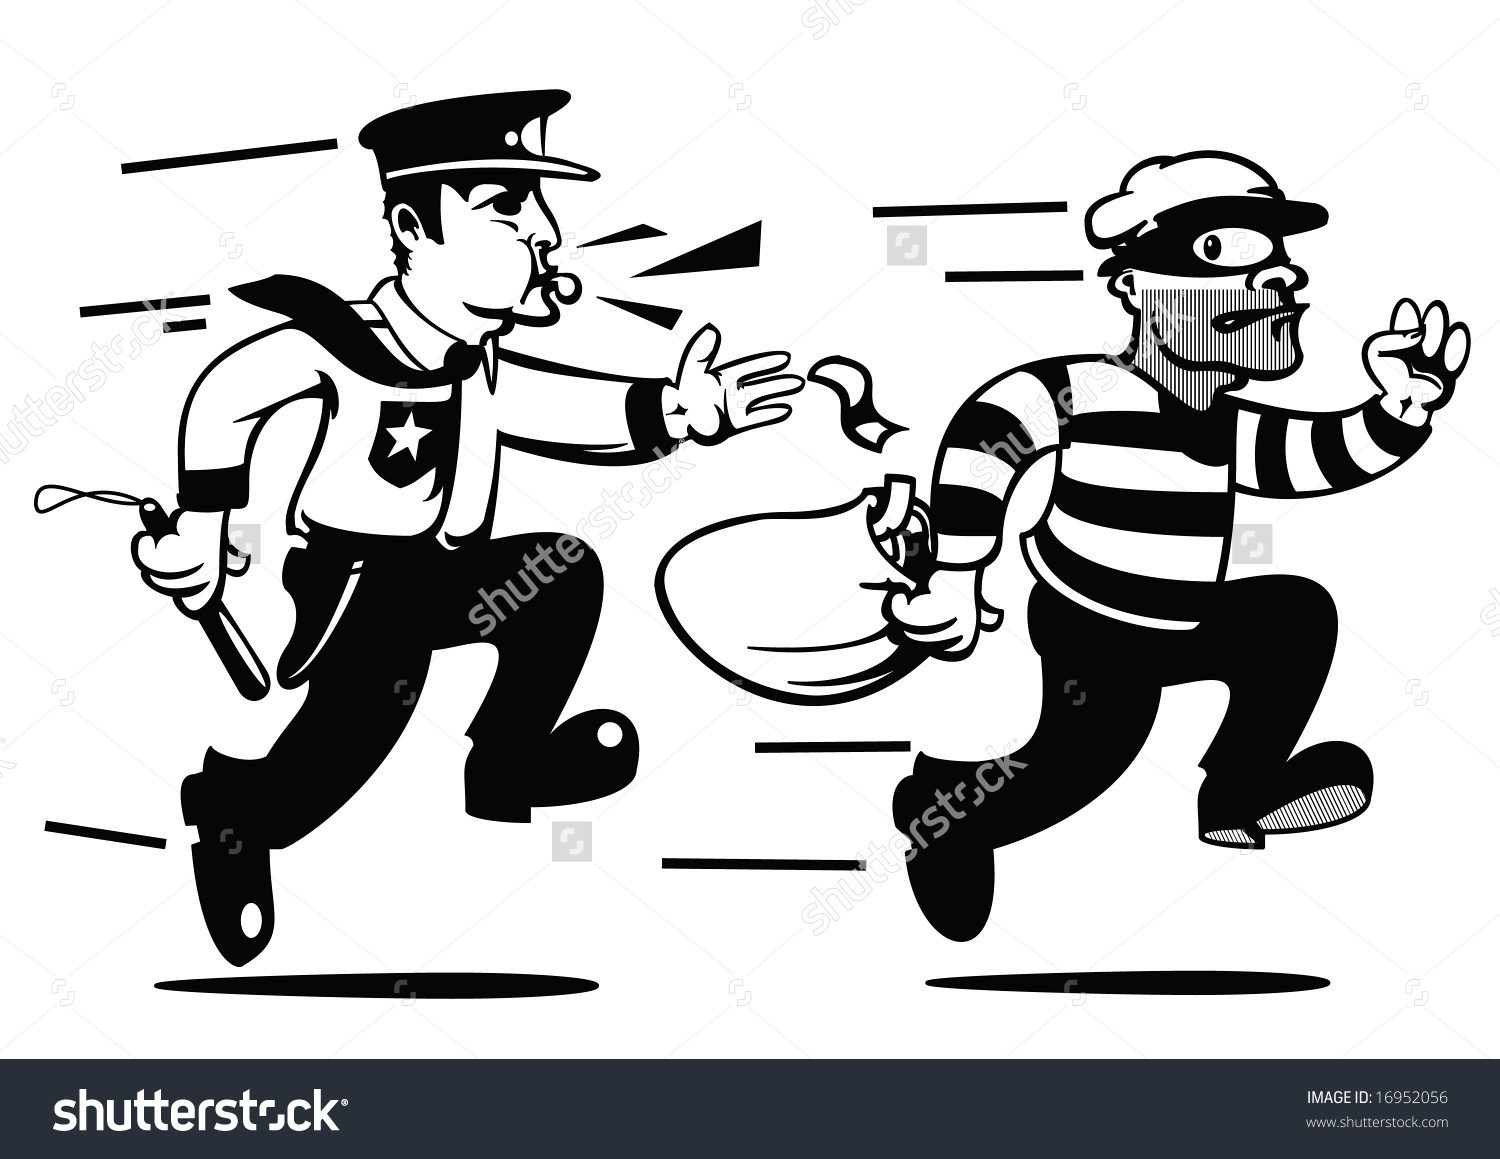 Police chase clipart jpg royalty free download Comicbook Style Cops Robbers Stock Vector 16952056 - Shutterstock jpg royalty free download